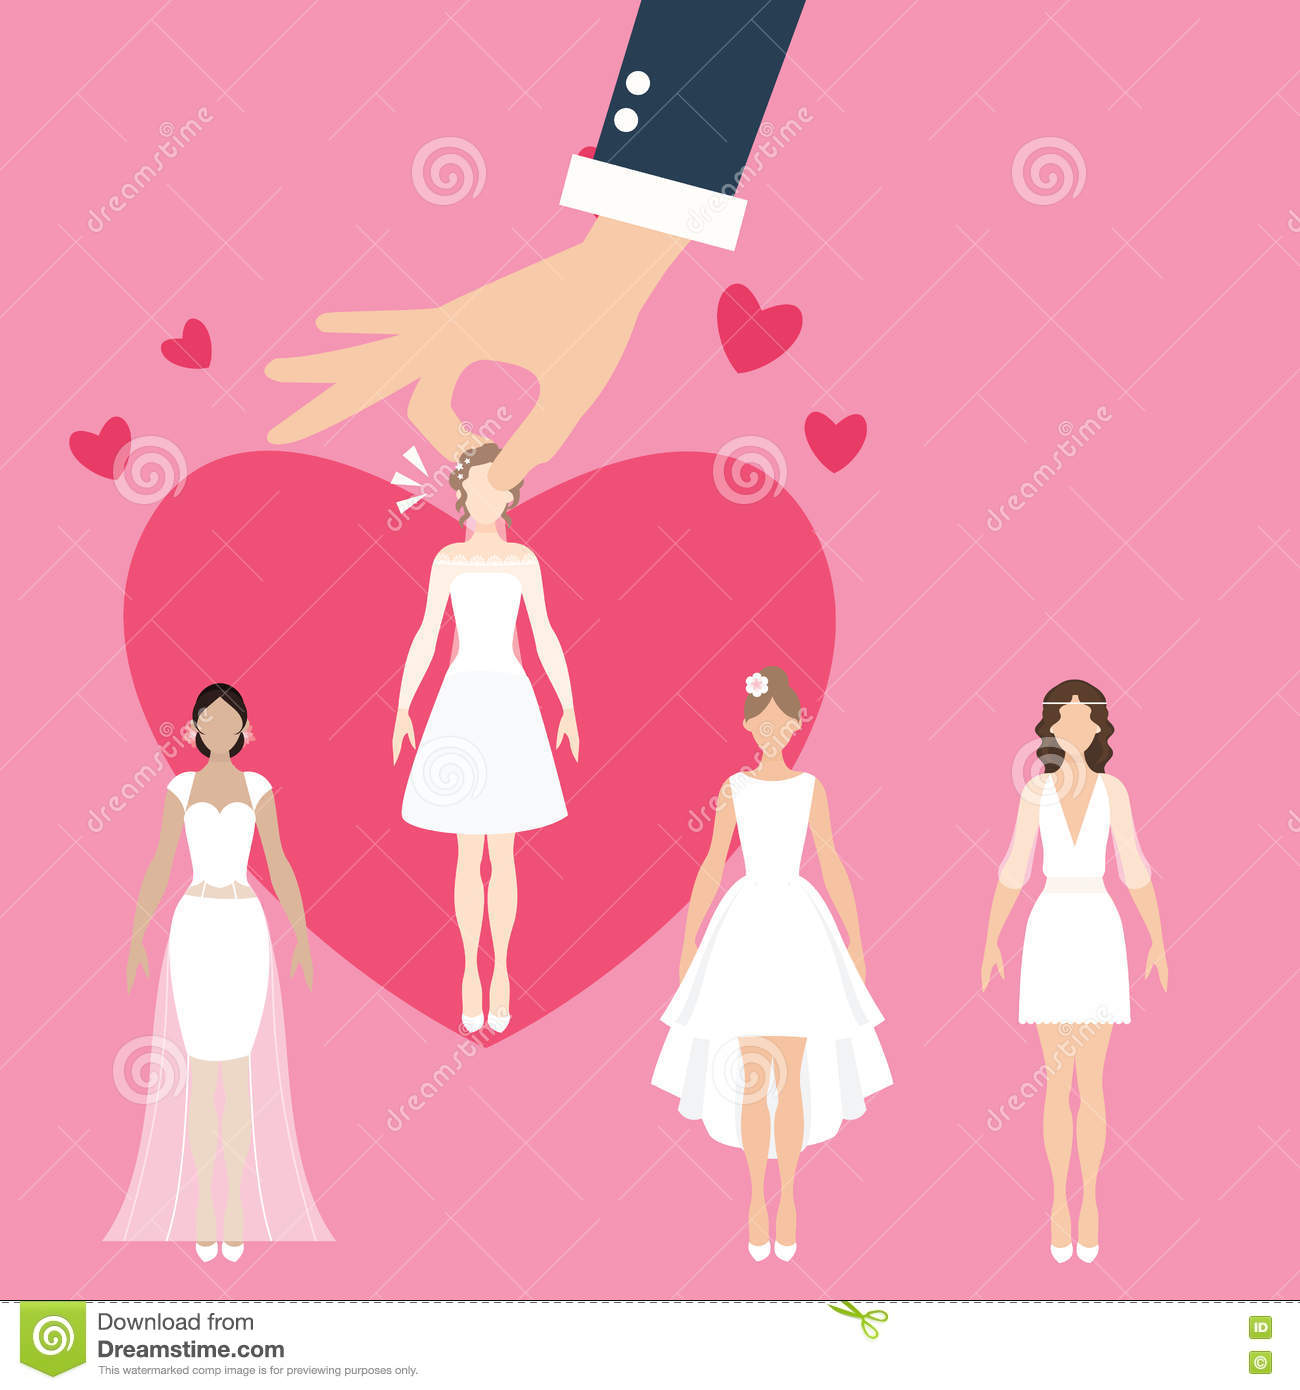 free matrimonial match making Register matrimonial profile free match making in your area, add your profile now search your mate right now in easy way marrybdcom is a self driven web media for match making you can find your soul mate just click search button if you like the person then you simply contact by yourself we do not want to get any responsibility.